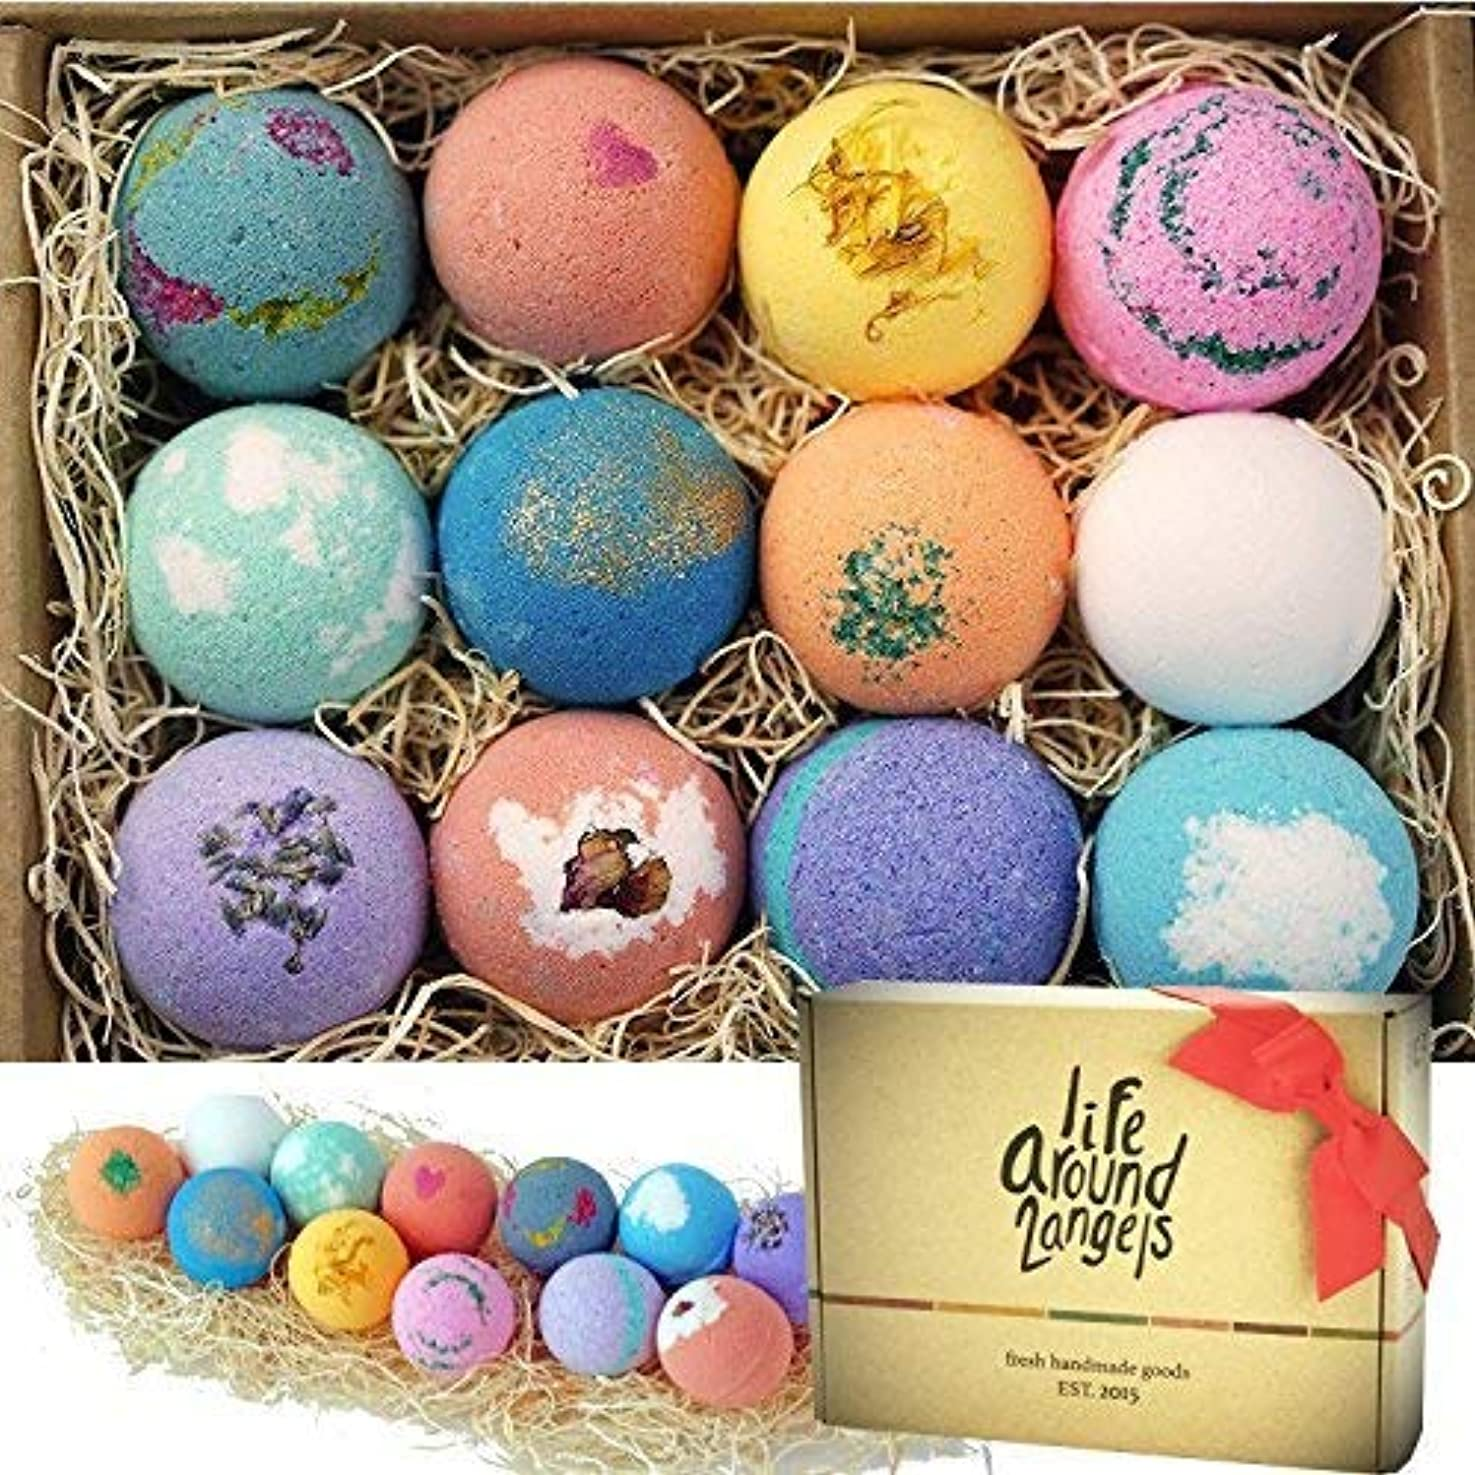 LifeAround2Angels バスボム 入浴剤 ギフトセット12個入り bath bombs USA made Fizzies, Shea & Coco Butter Dry Skin Moisturize, Perfect...